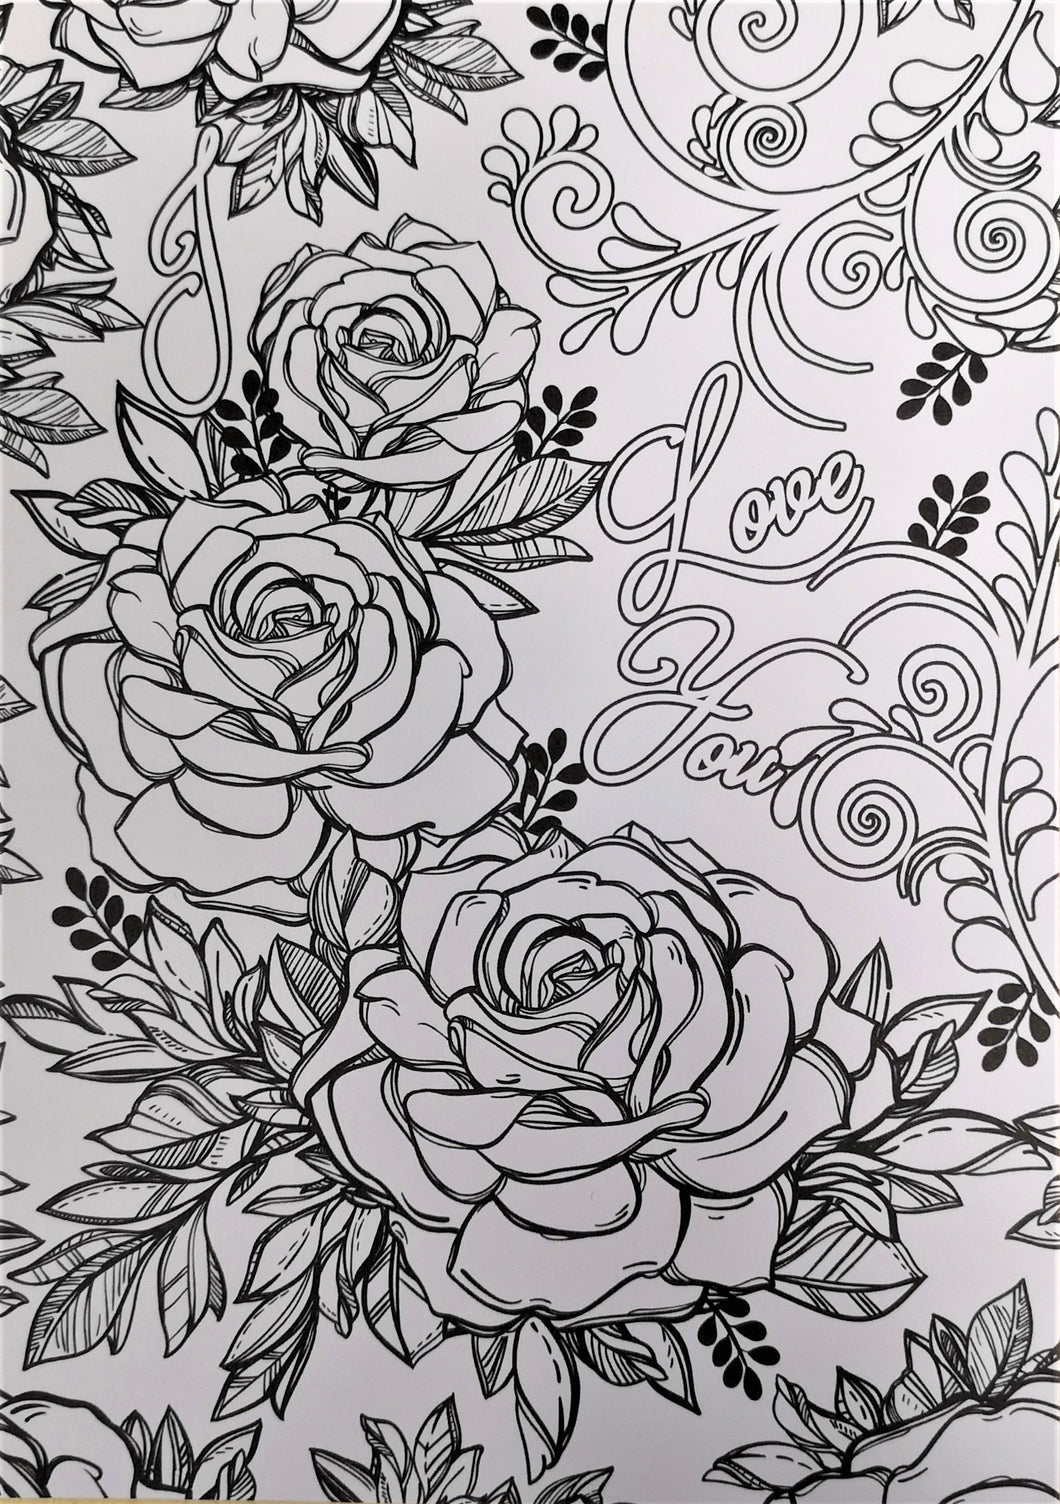 DaliART - A5 Colouring Pages - 3 designs - 9 in total